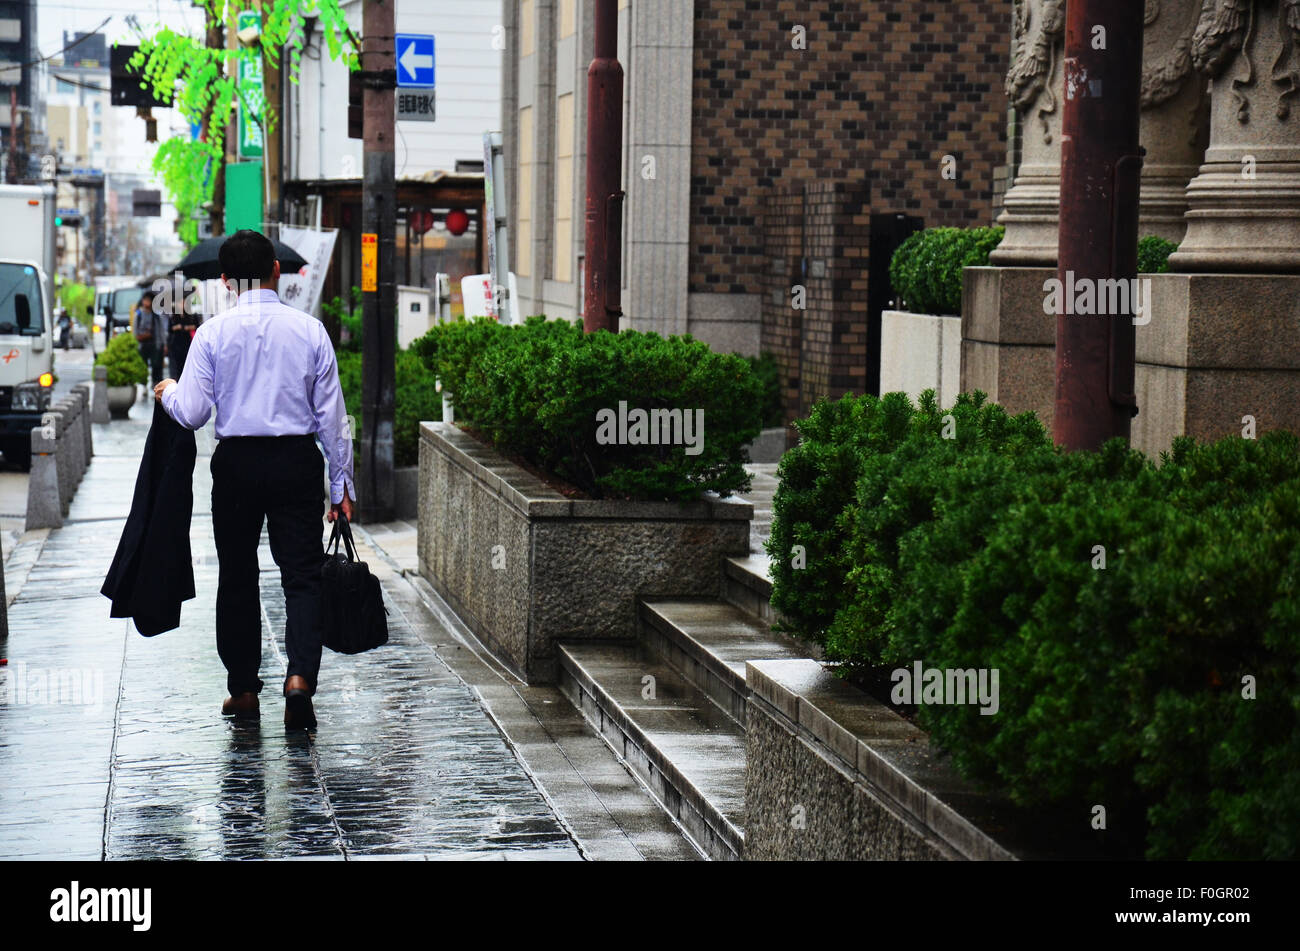 Bussiness japanese man walking go to office near at Nara station while raining time on July 7, 2015 in Nara, Japan Stock Photo